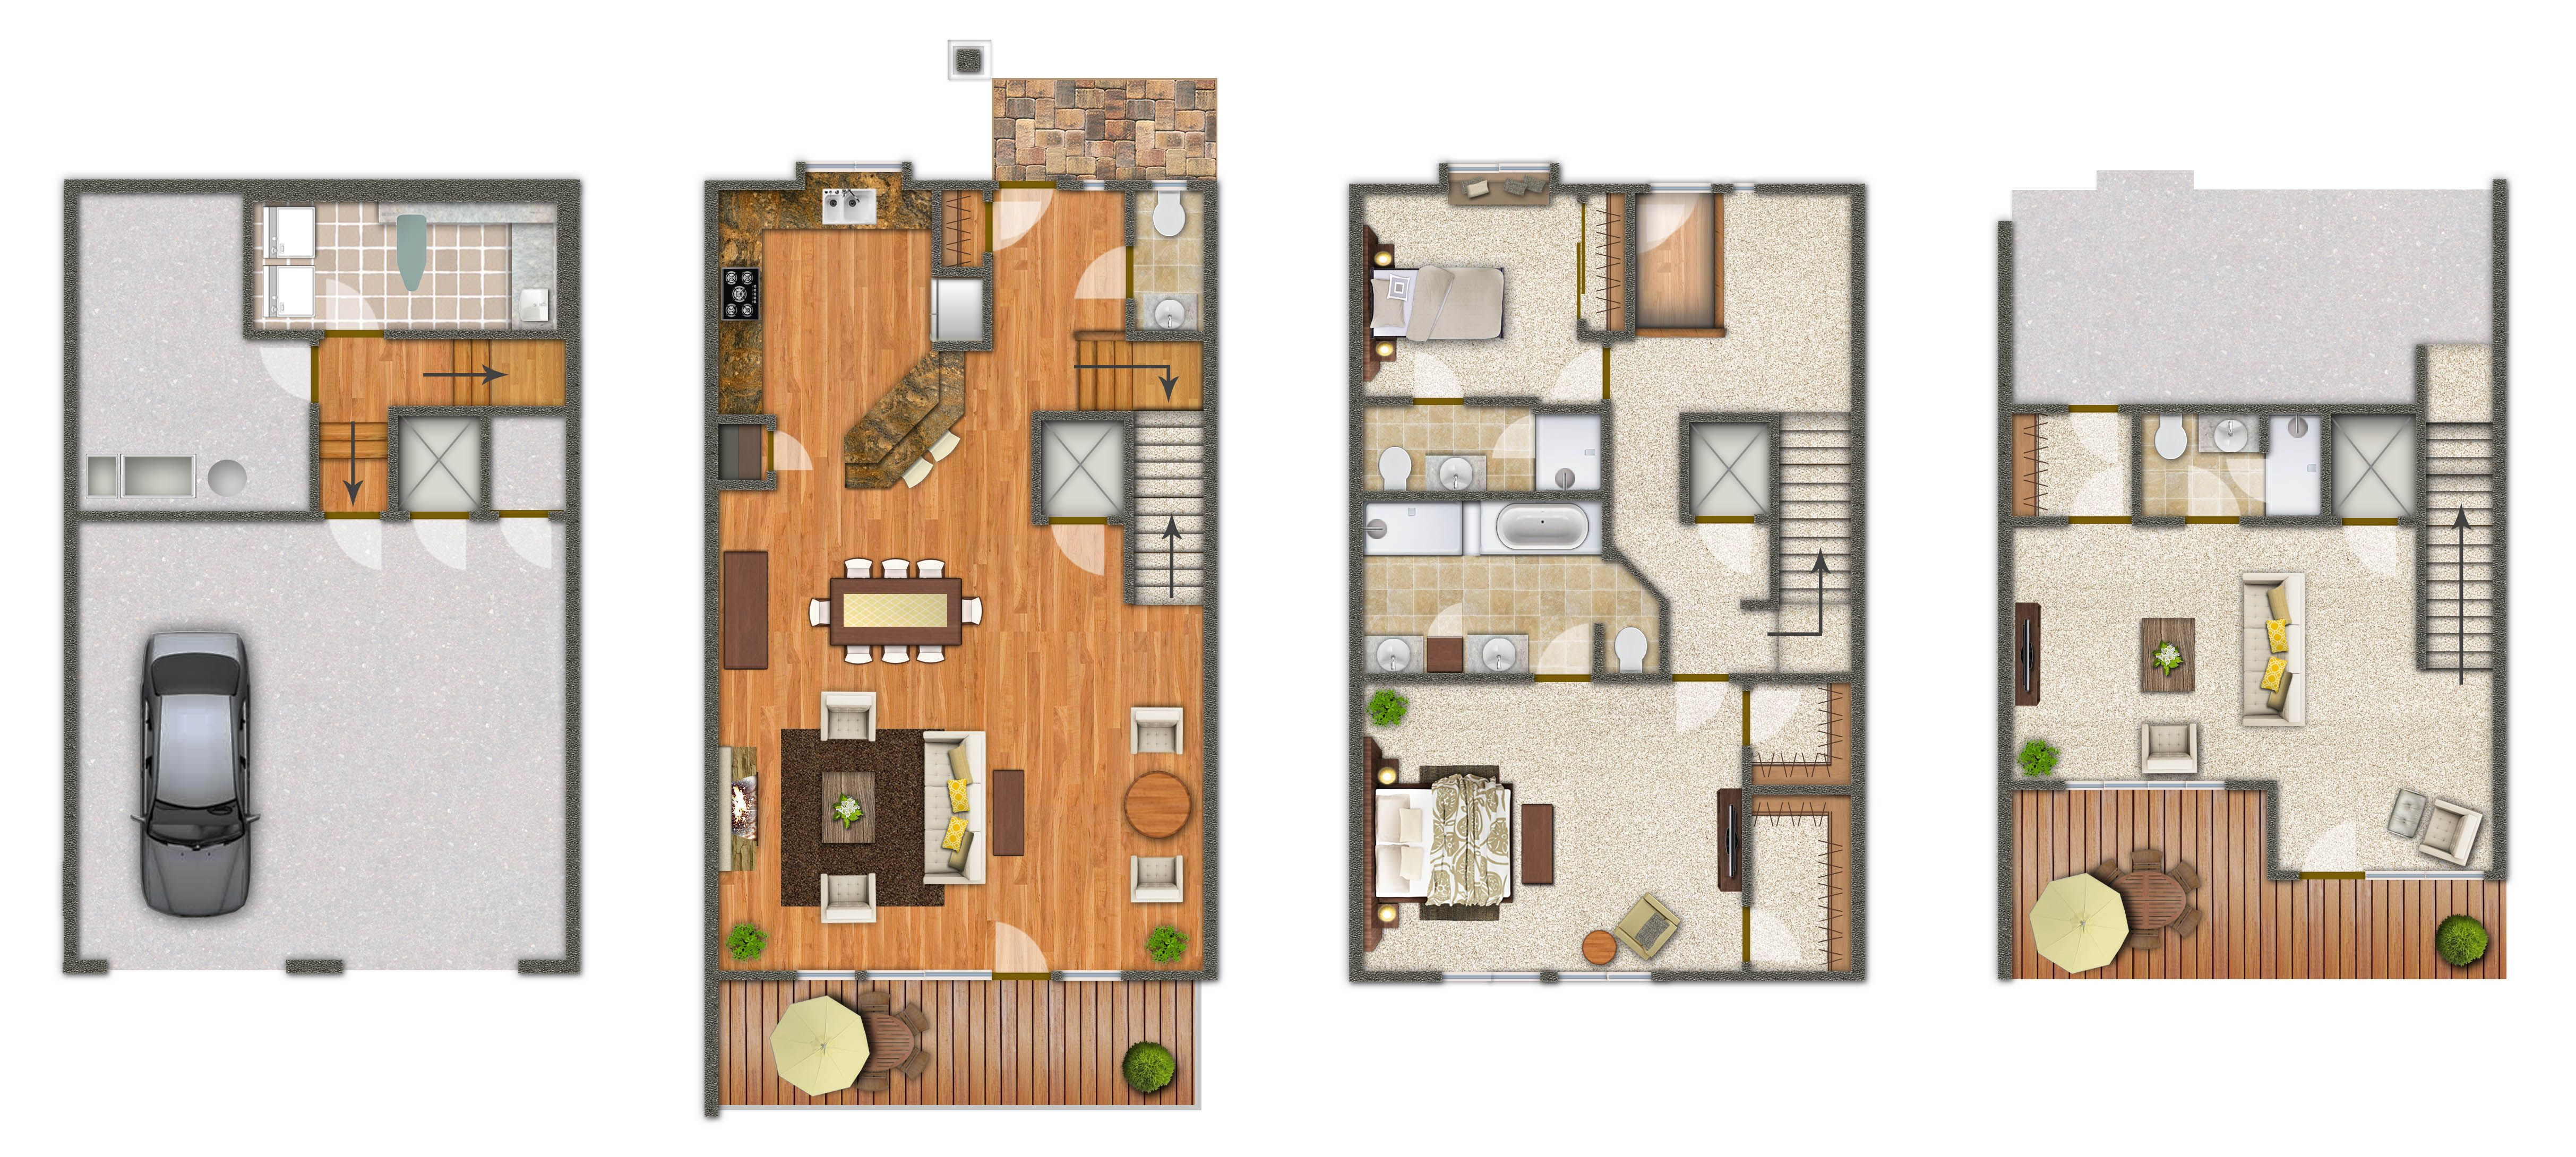 Townhome floor plans mariemont townhomes kenwood for Luxury townhome plans